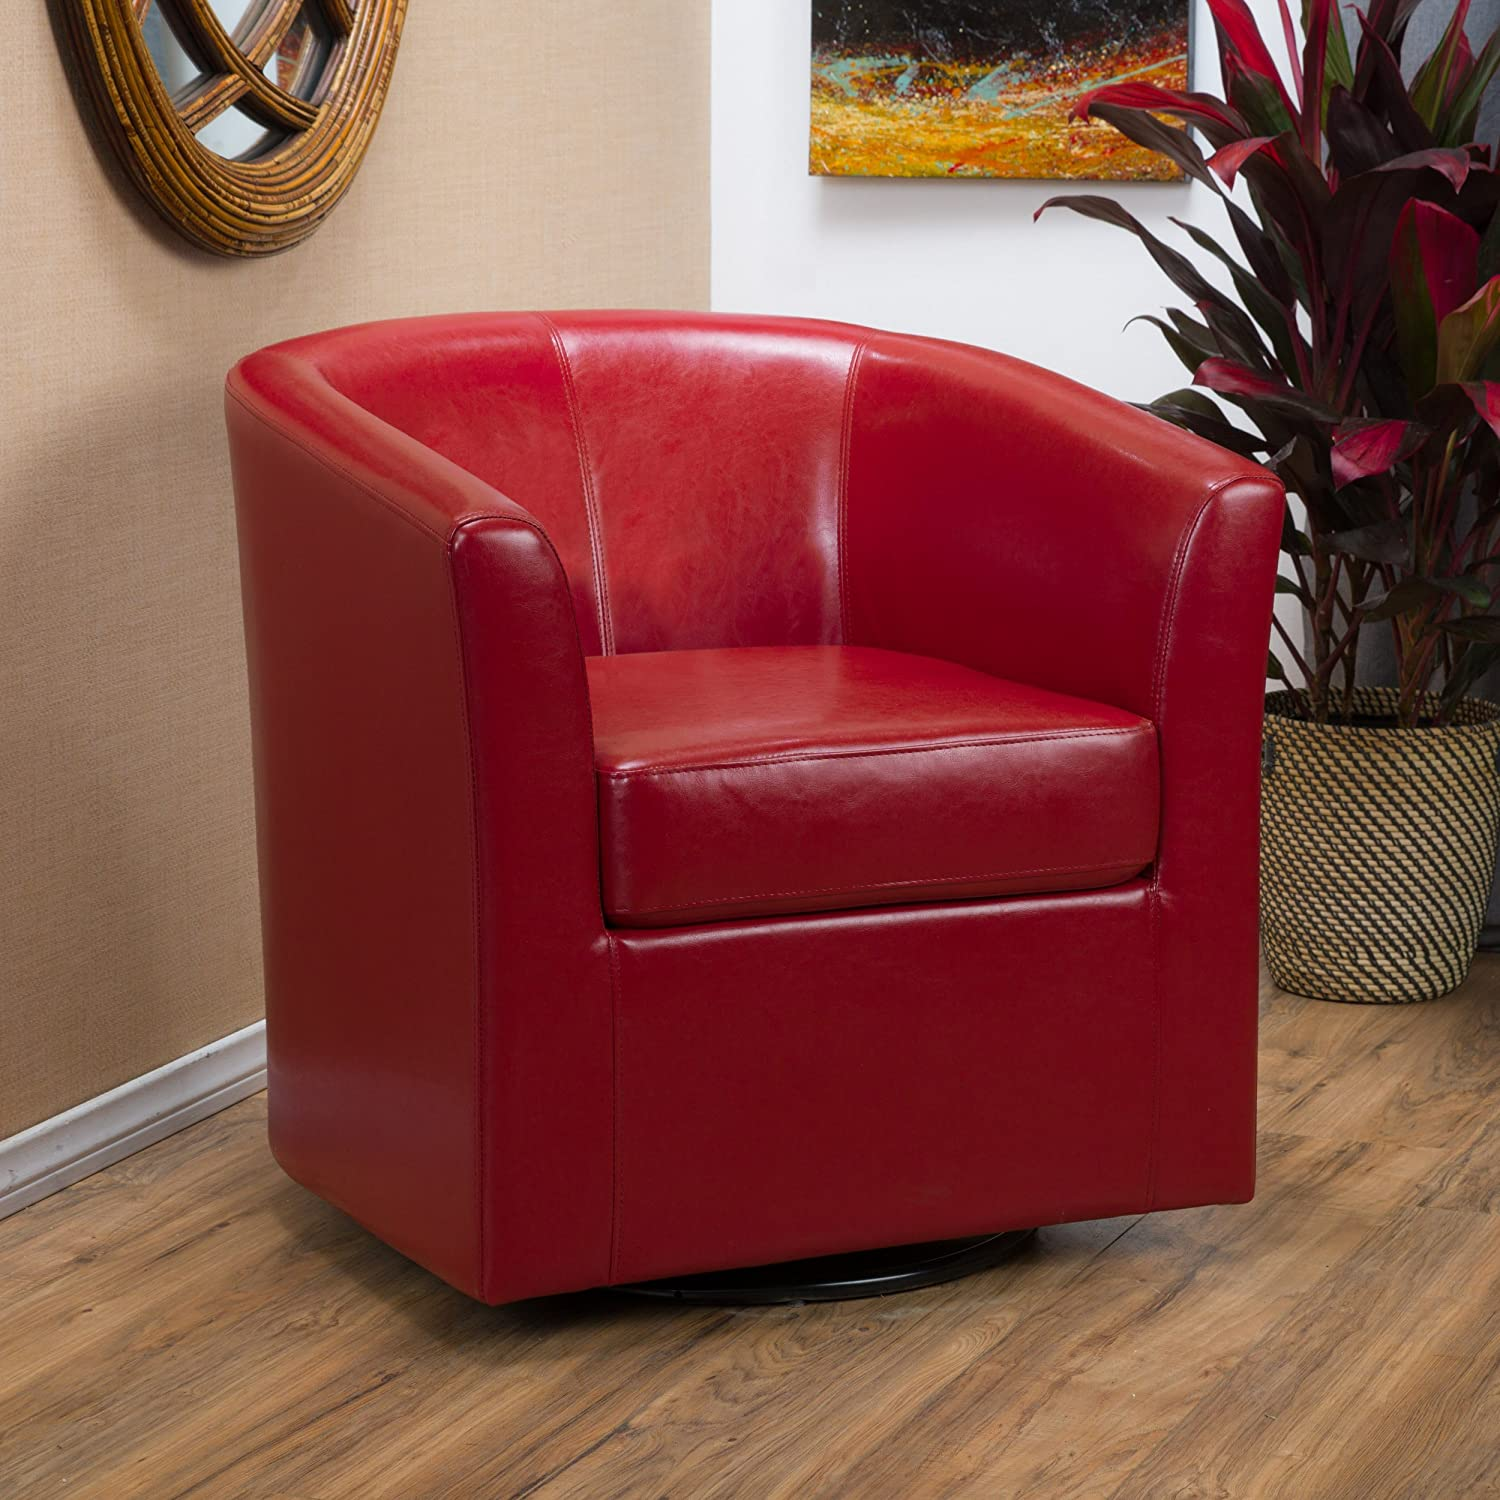 Amazon Com Corley Red Leather Swivel Club Chair Kitchen Dining